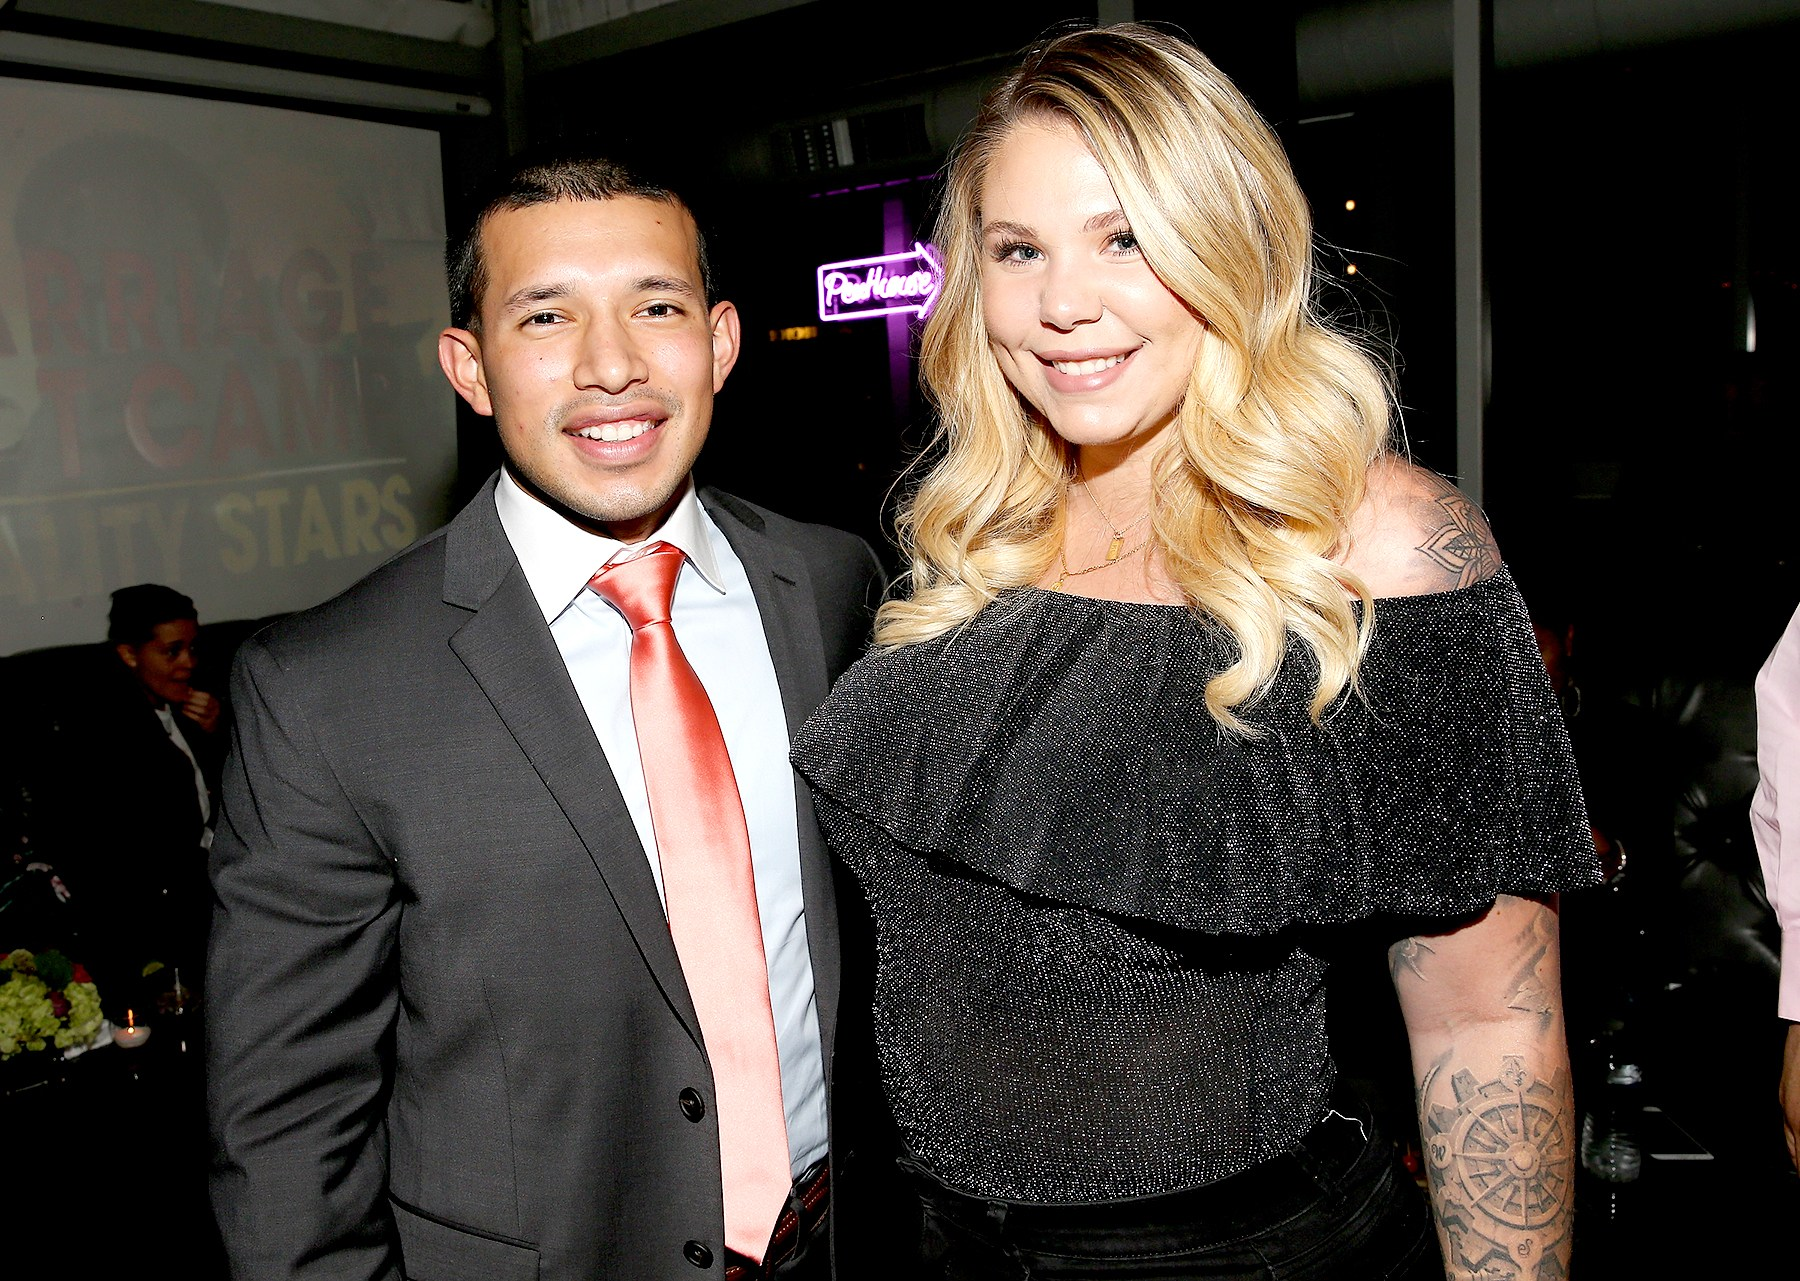 Javi Marroquin and Kailyn Lowry attend the exclusive premiere party for Marriage Boot Camp Reality Stars Season 9 hosted by WE tv on October 12, 2017 in New York City.